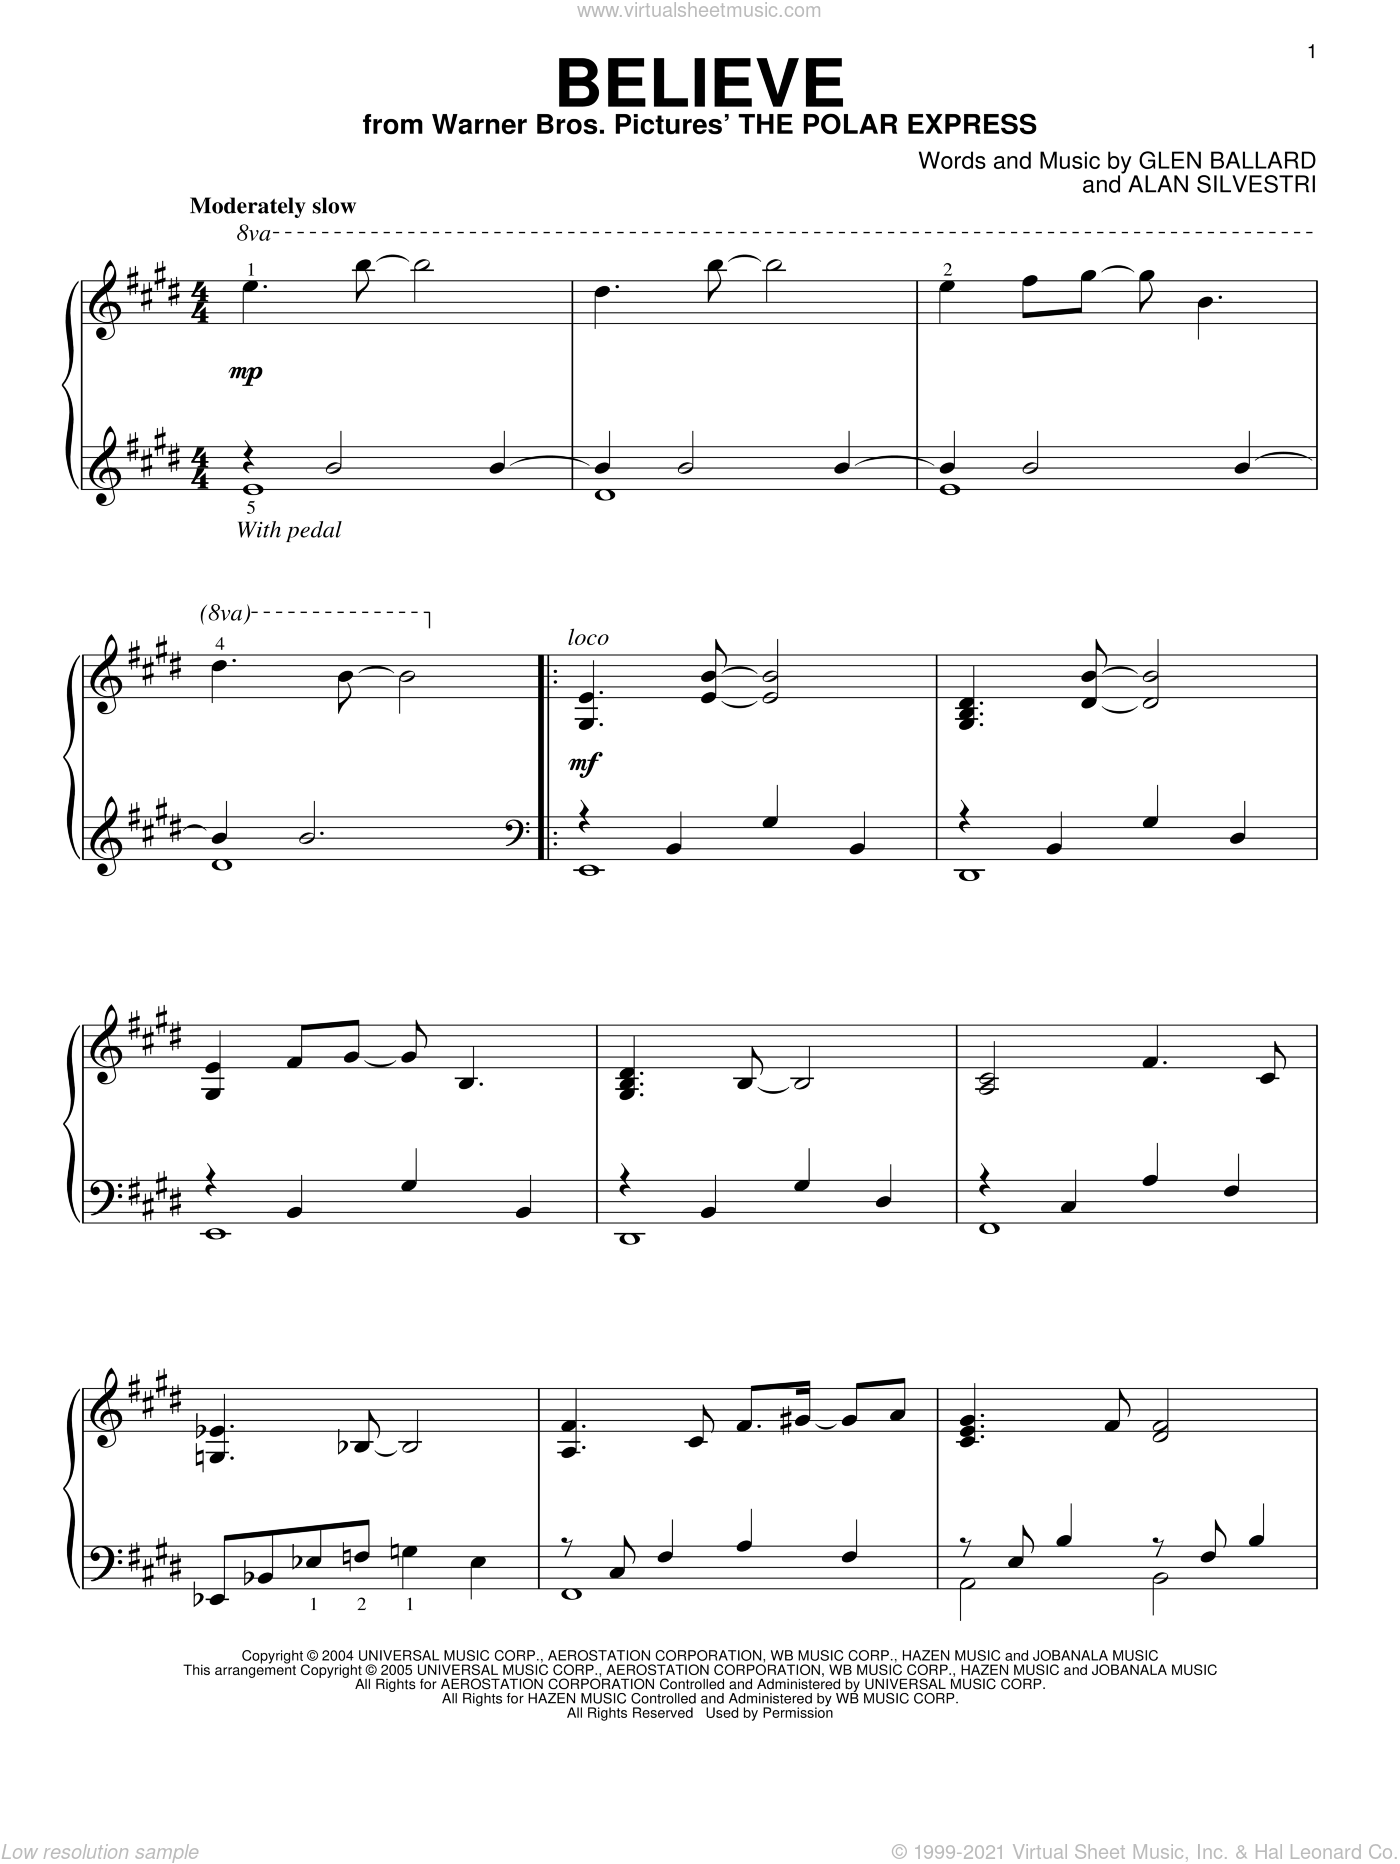 Believe sheet music for piano solo by Josh Groban, Alan Silvestri and Glen Ballard, Christmas carol score, intermediate piano. Score Image Preview.